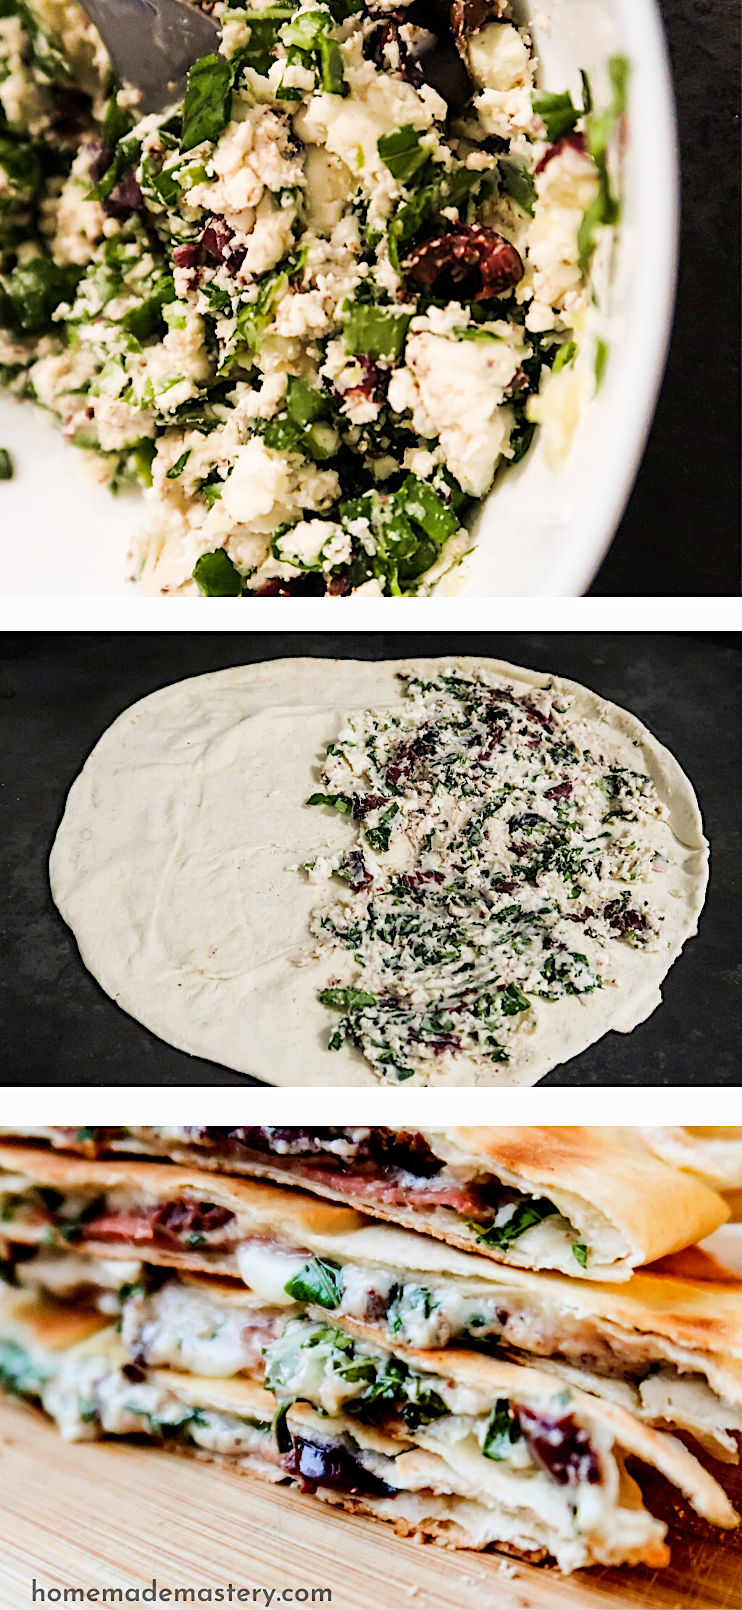 Easy Mediterranean feta cheese quesadilla recipe with garlic and herbs! The pictures do not look great, but this is an easy and very delicious lunch or dinner recipe that tastes really good!